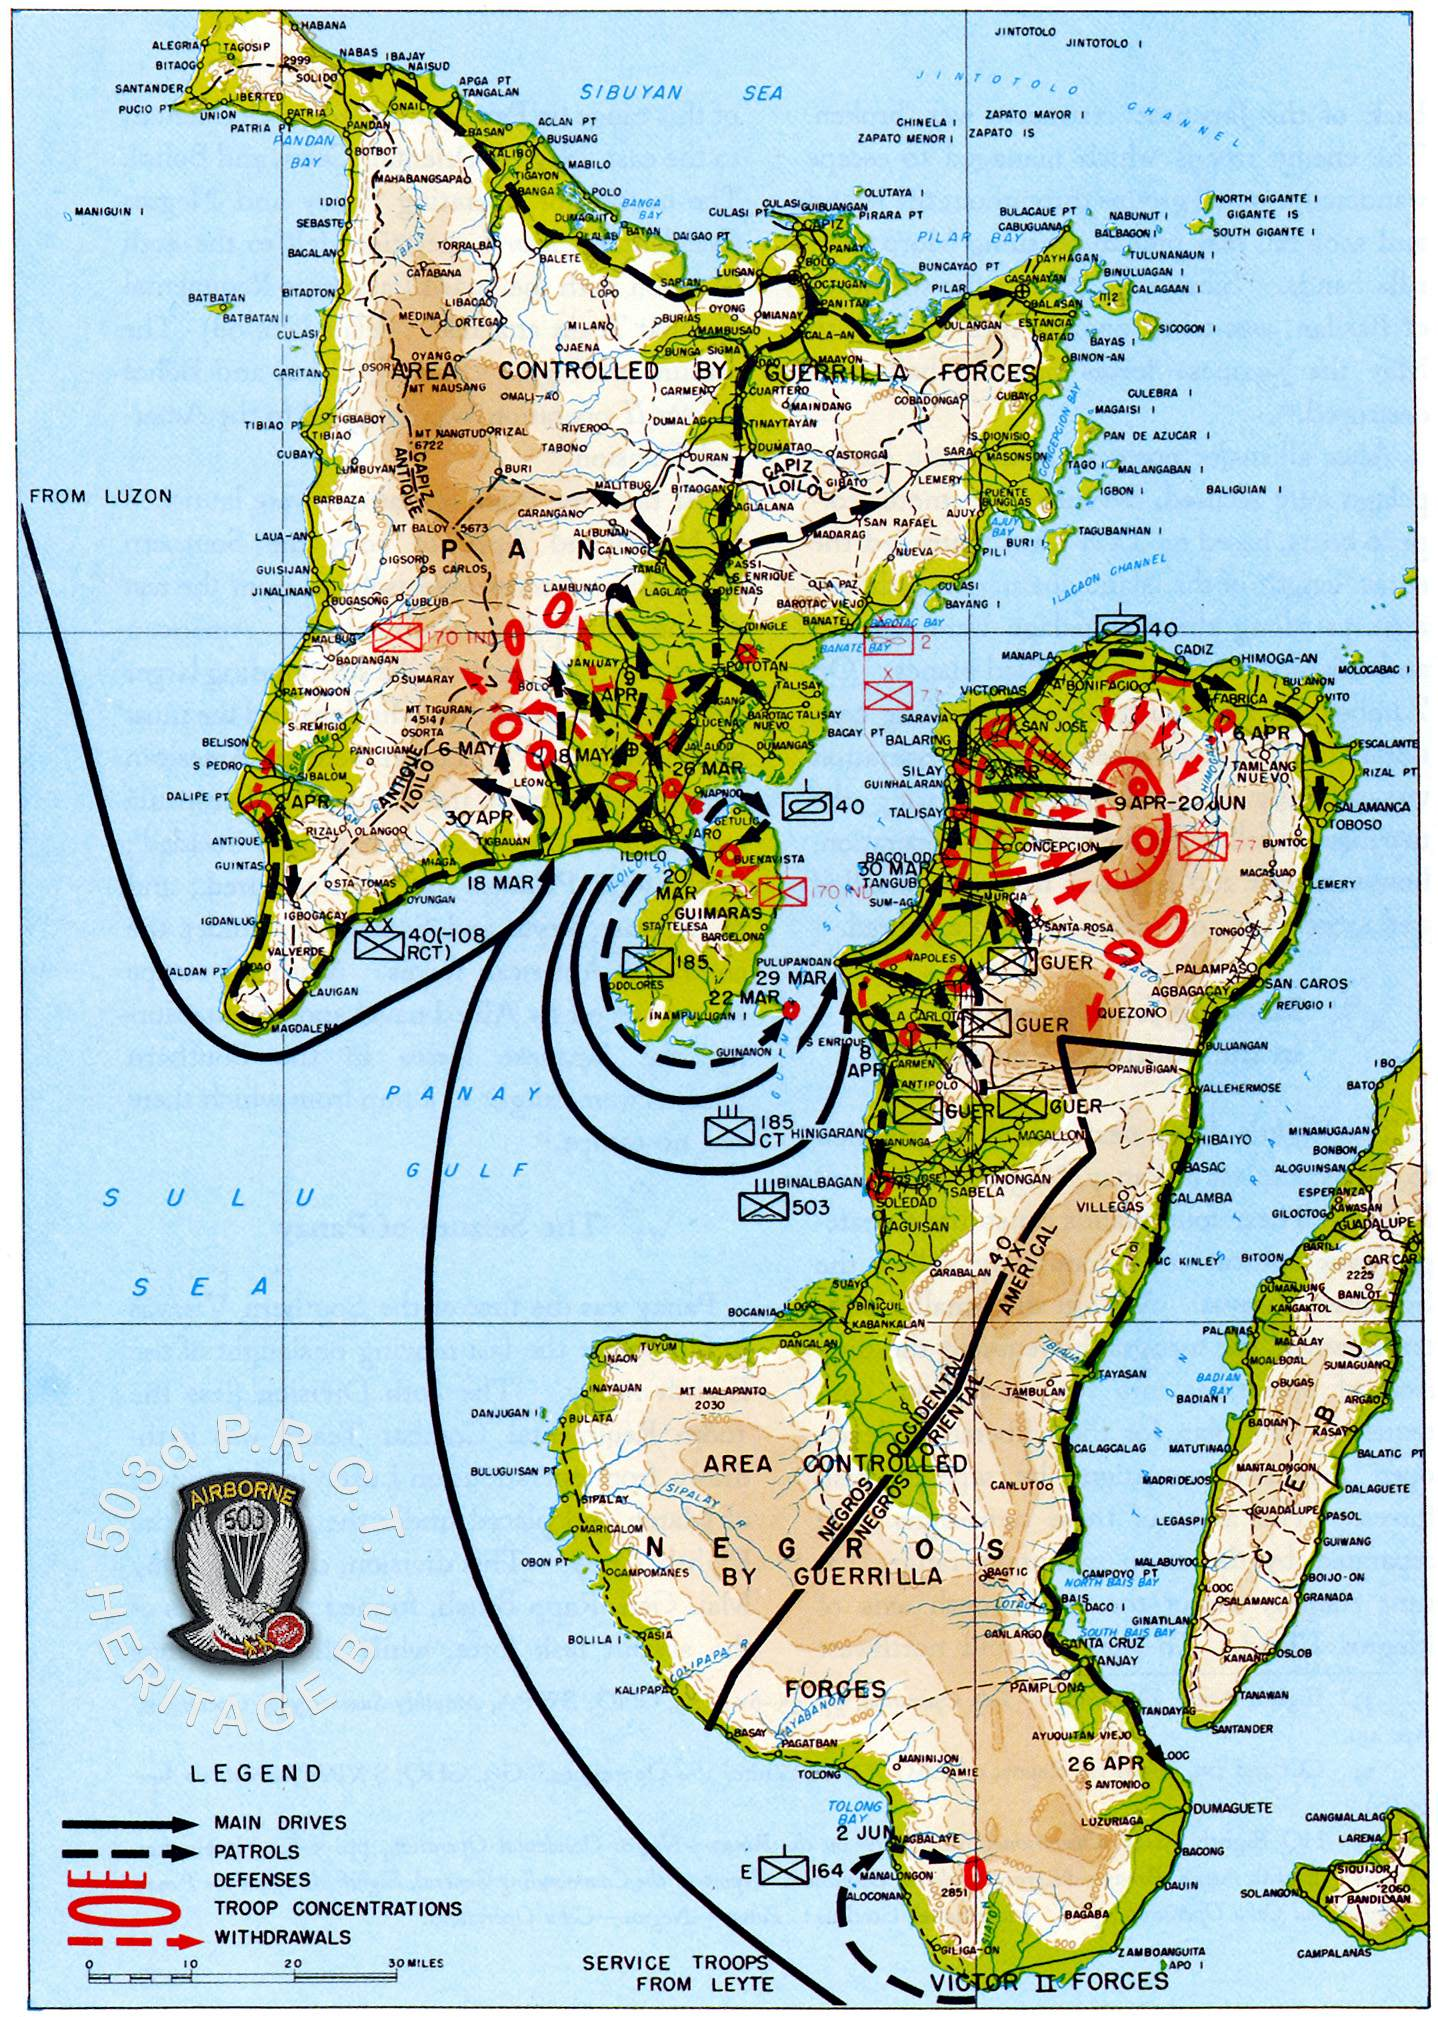 maps of the usa with Map 90 Large on Novara Plan furthermore Zambia Capital Map moreover Thesisguide furthermore Indonesia Political Map furthermore Geografie.